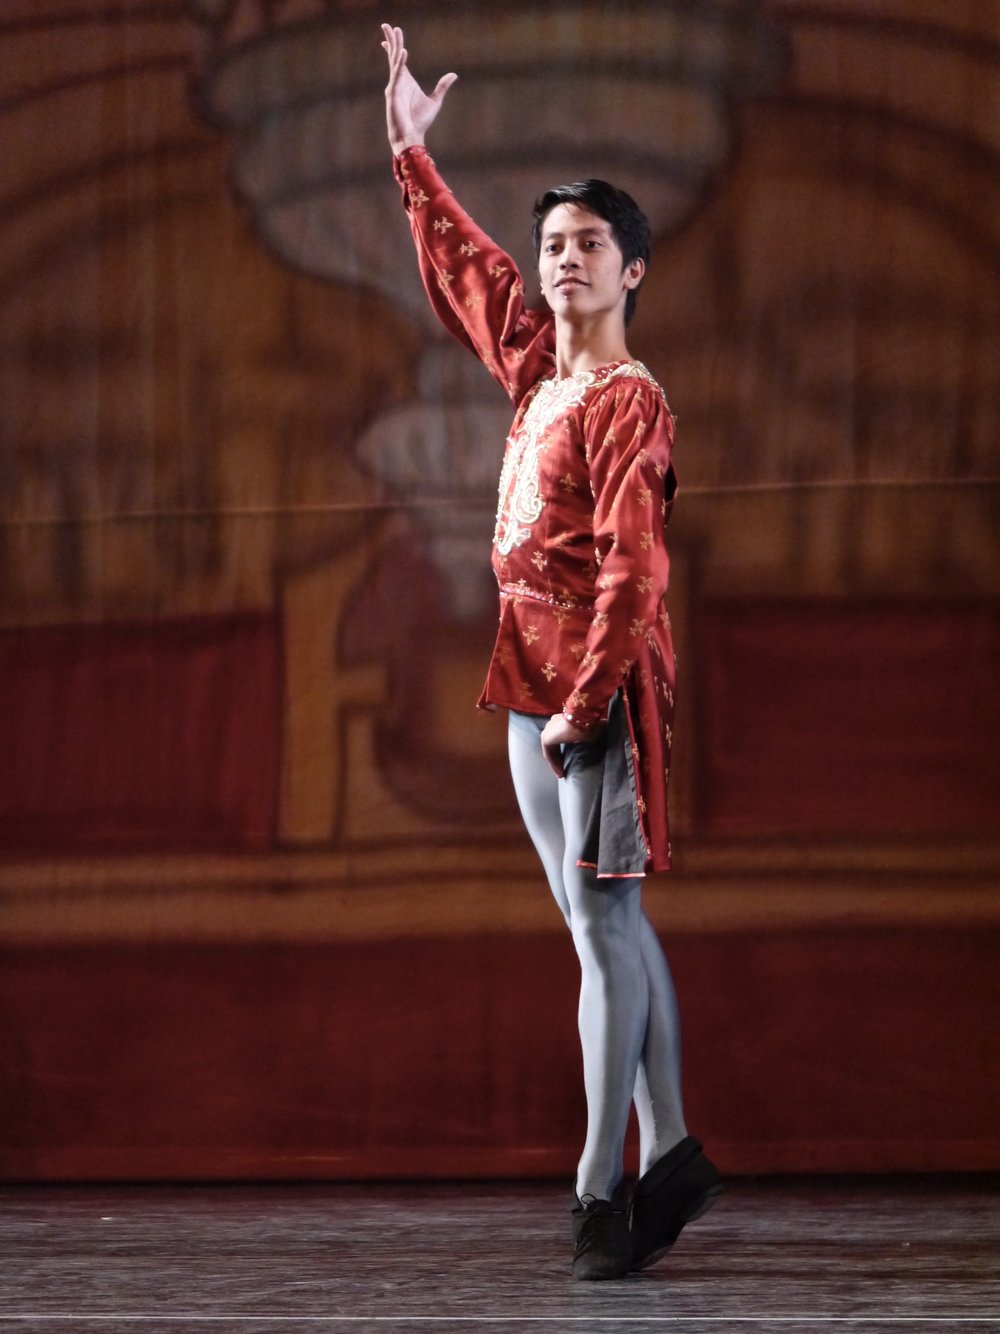 Rodney Catubay enjoys dancing the classics, including  Swan Lake , from which he also selected pieces he performed in competitions. Photo by Giselle P. Kasilag